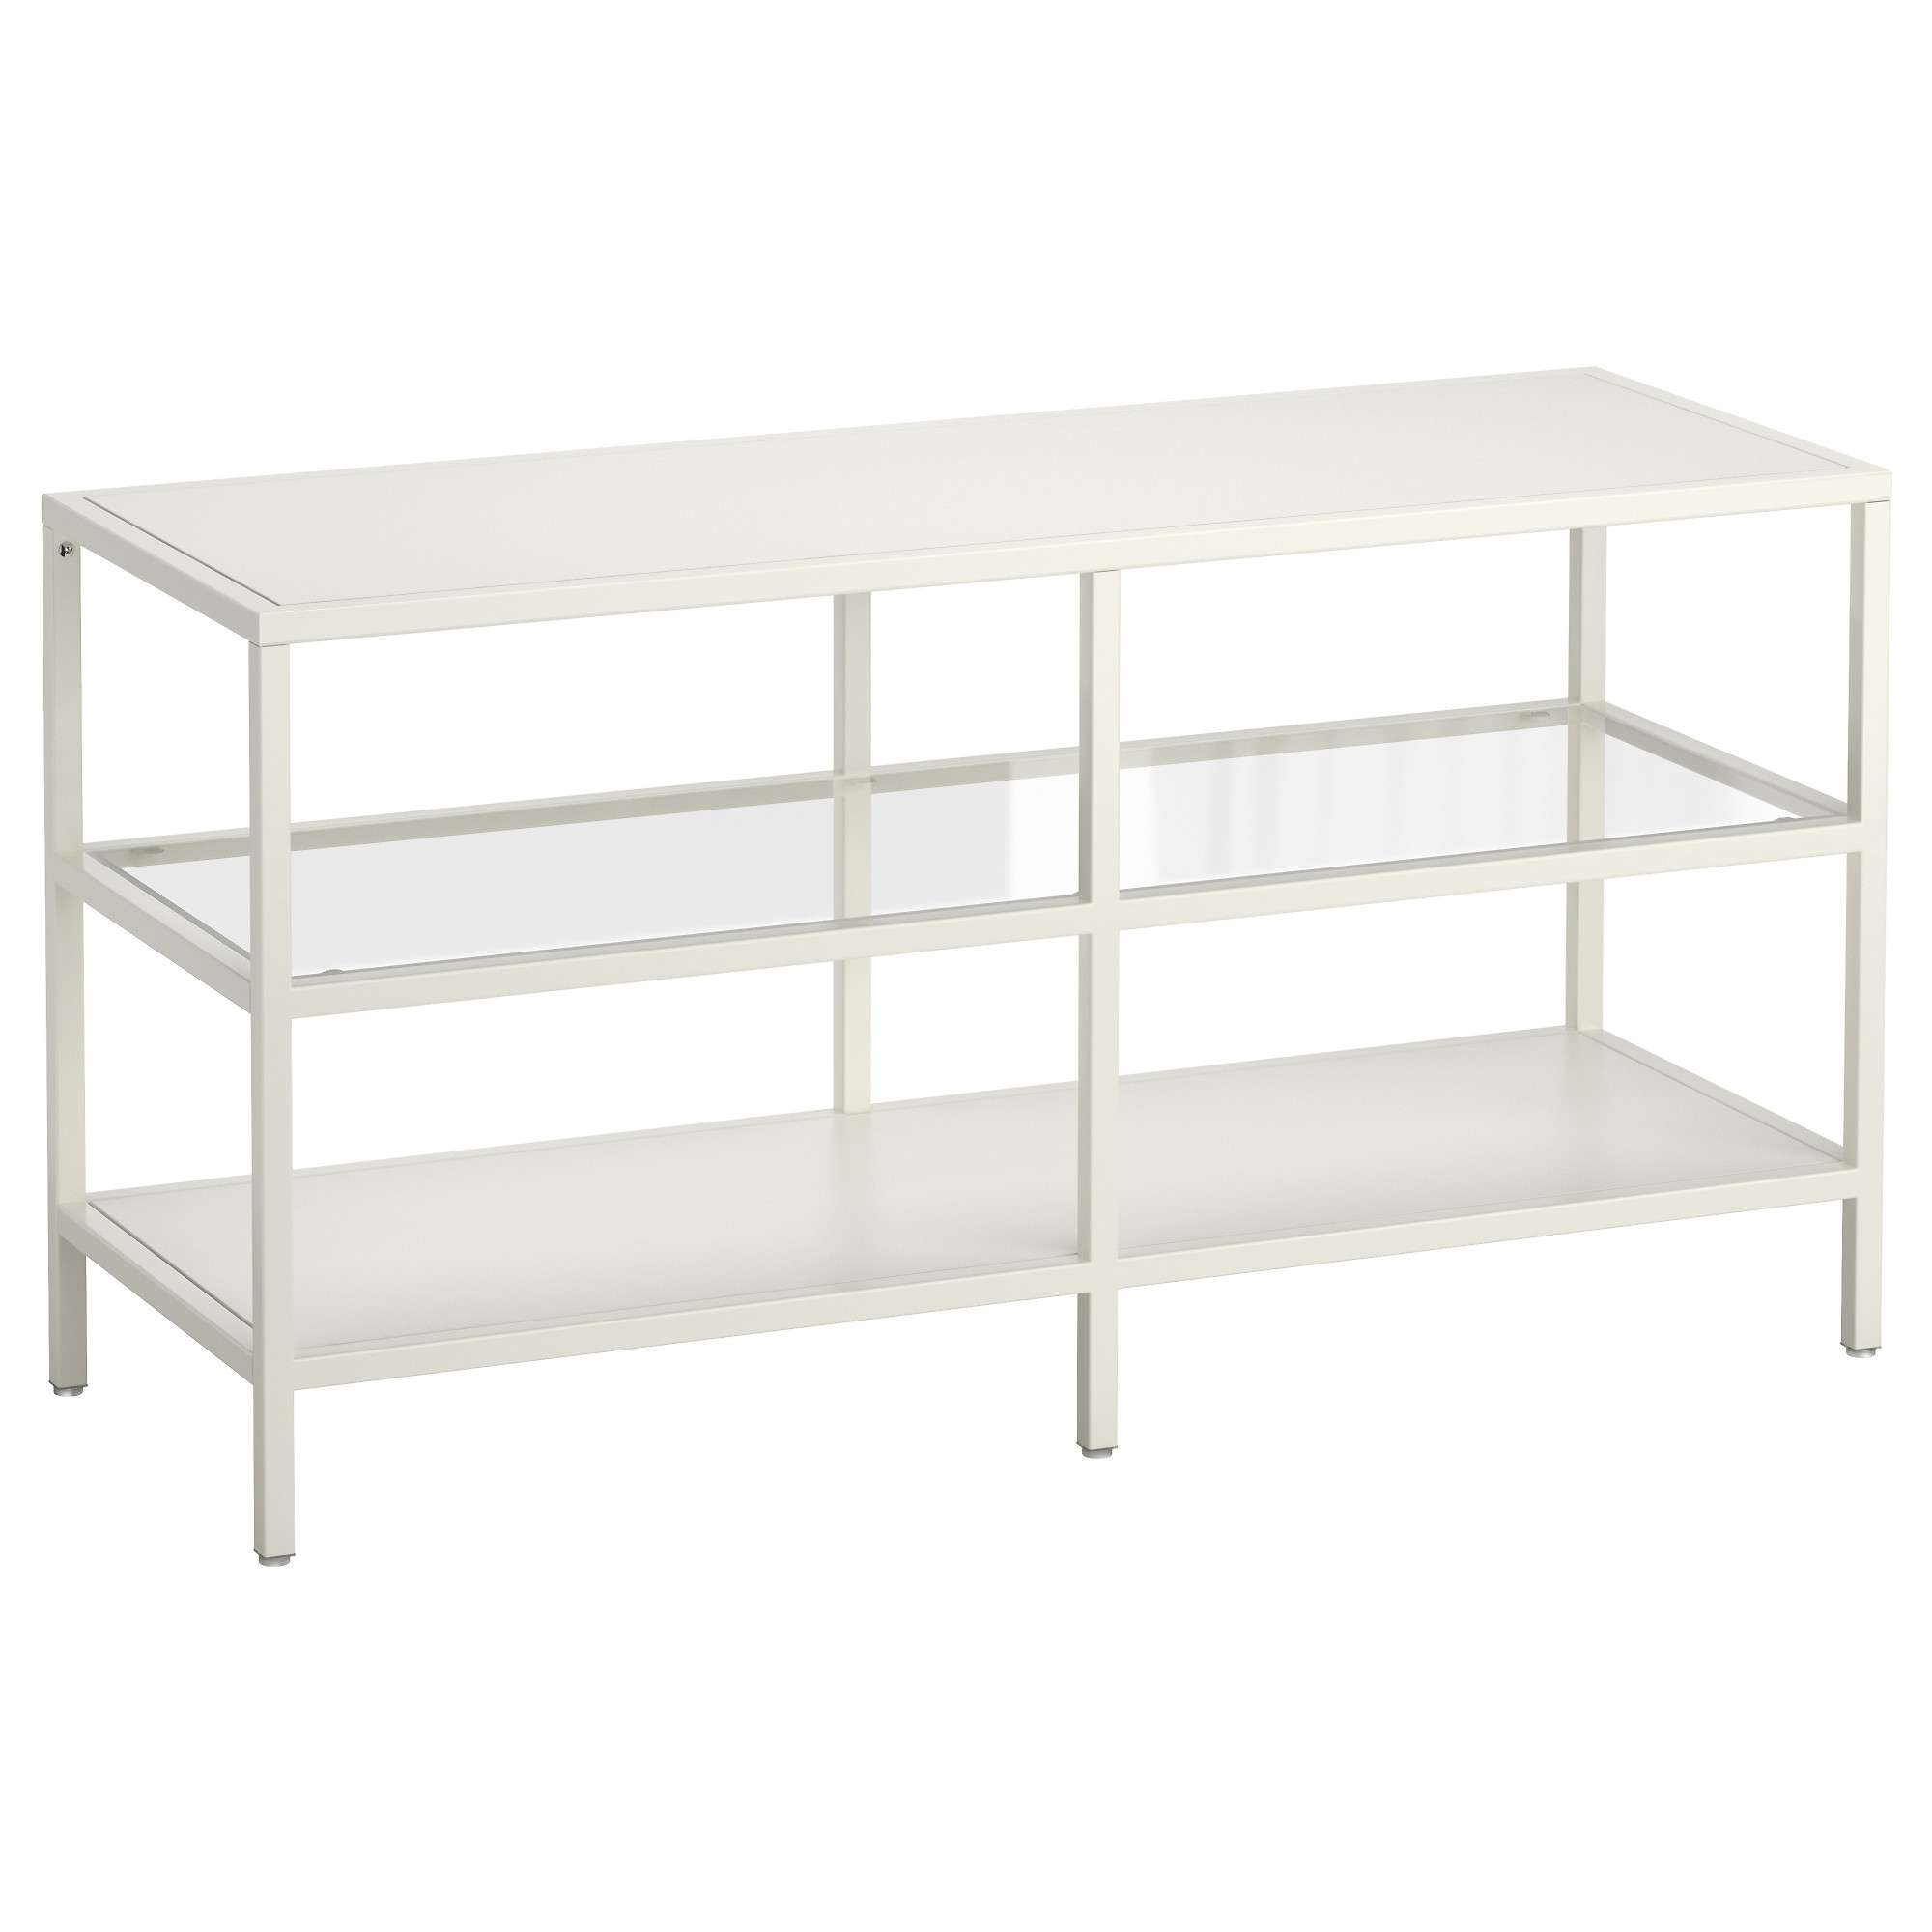 Vittsjö Tv Unit – White/glass – Ikea In White Glass Tv Stands (View 15 of 15)